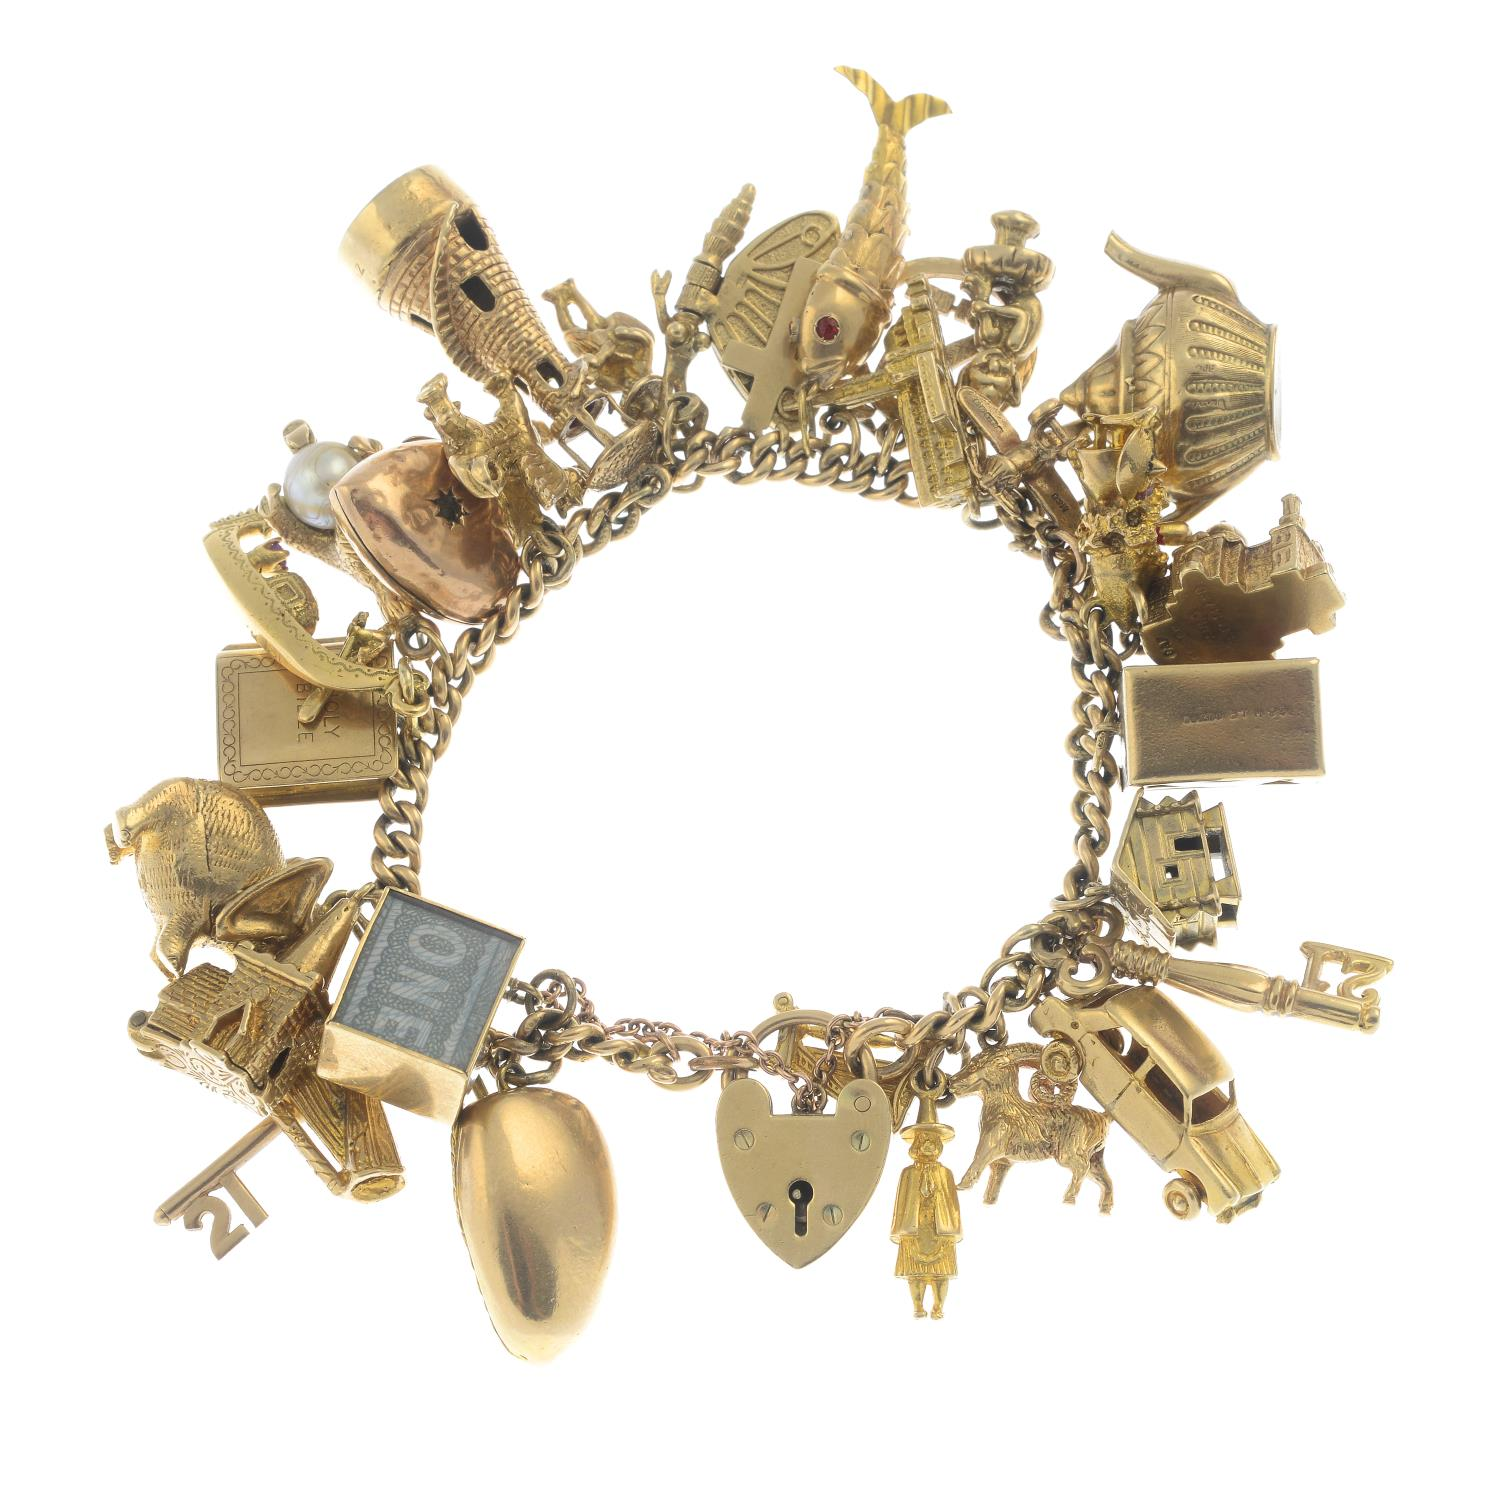 A charm bracelet, suspending thirty charms.Bracelet stamped 15 625.